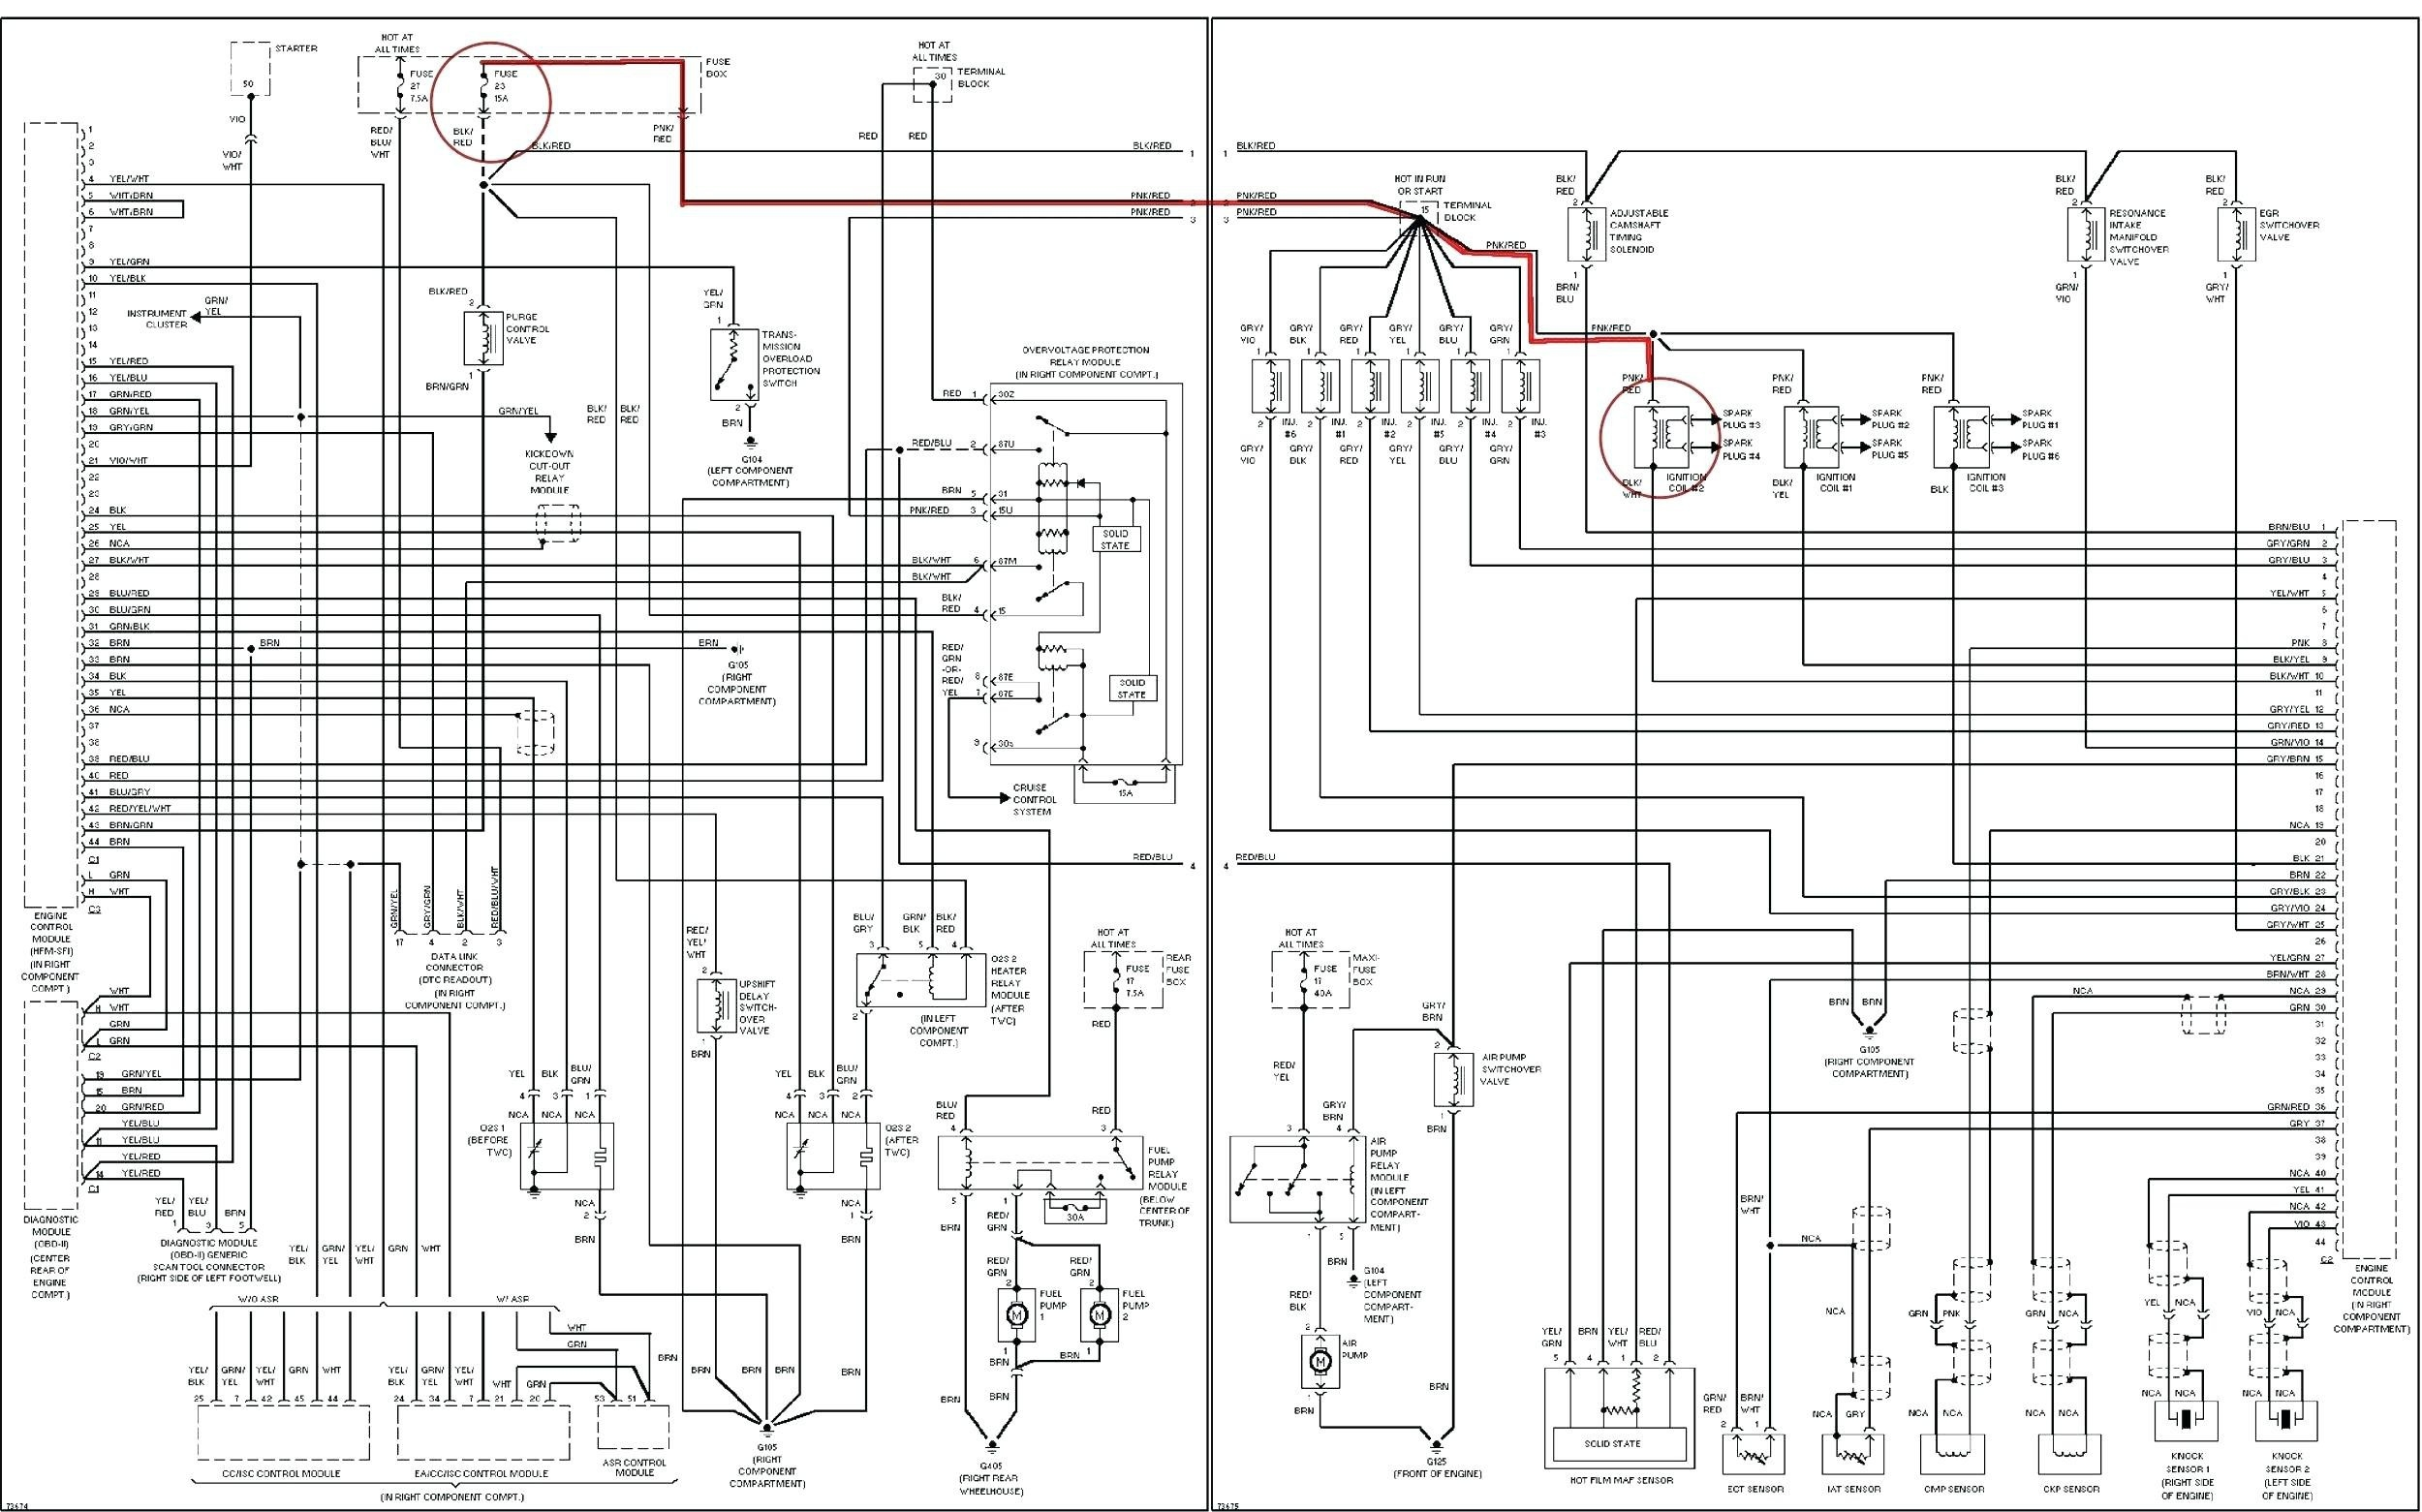 [DIAGRAM] Mercedes Benz W168 Wiring Diagram FULL Version